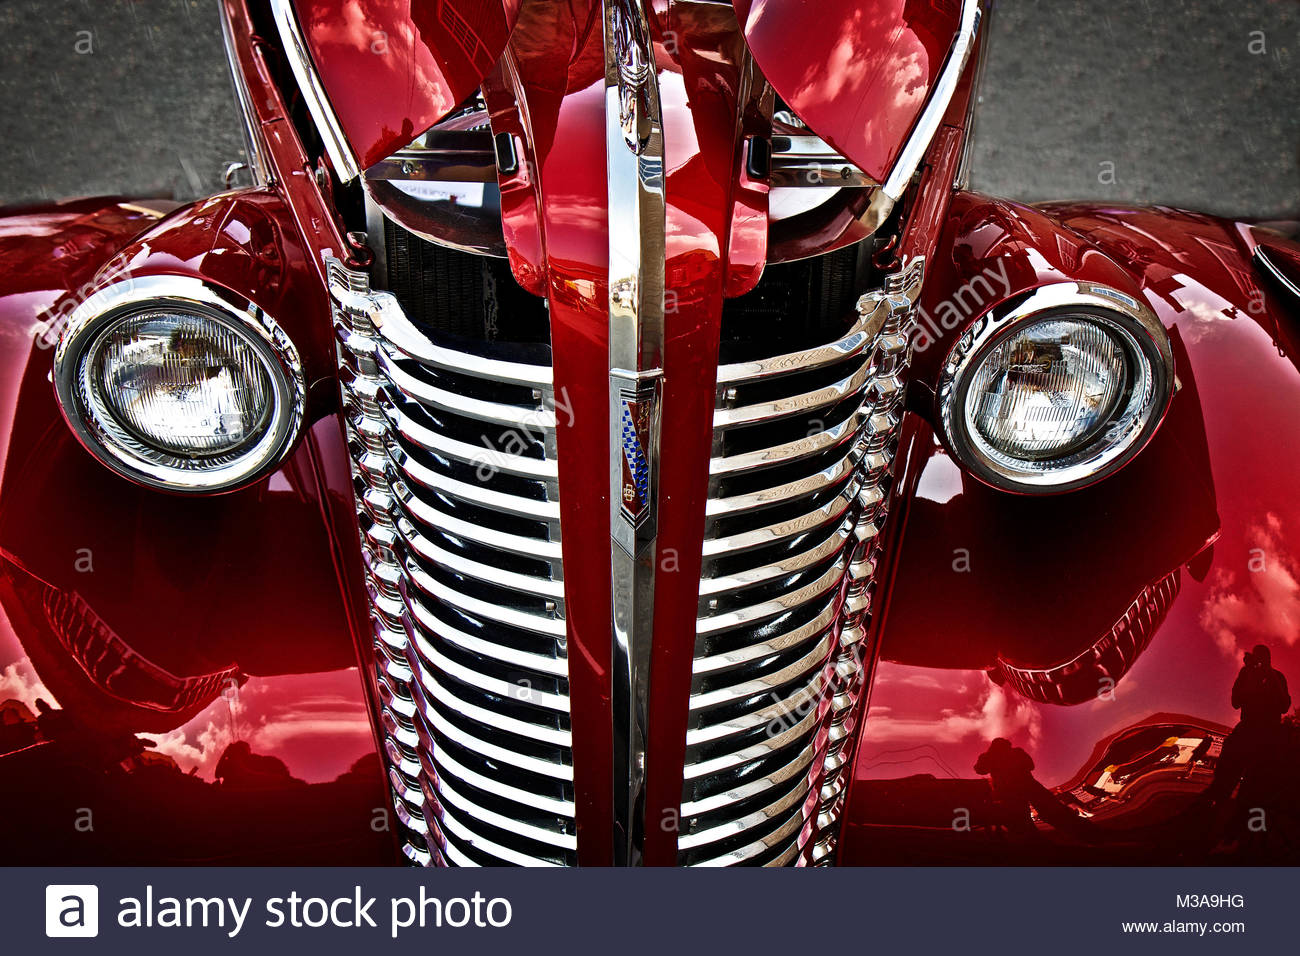 Red Classic Auto - Stock Image